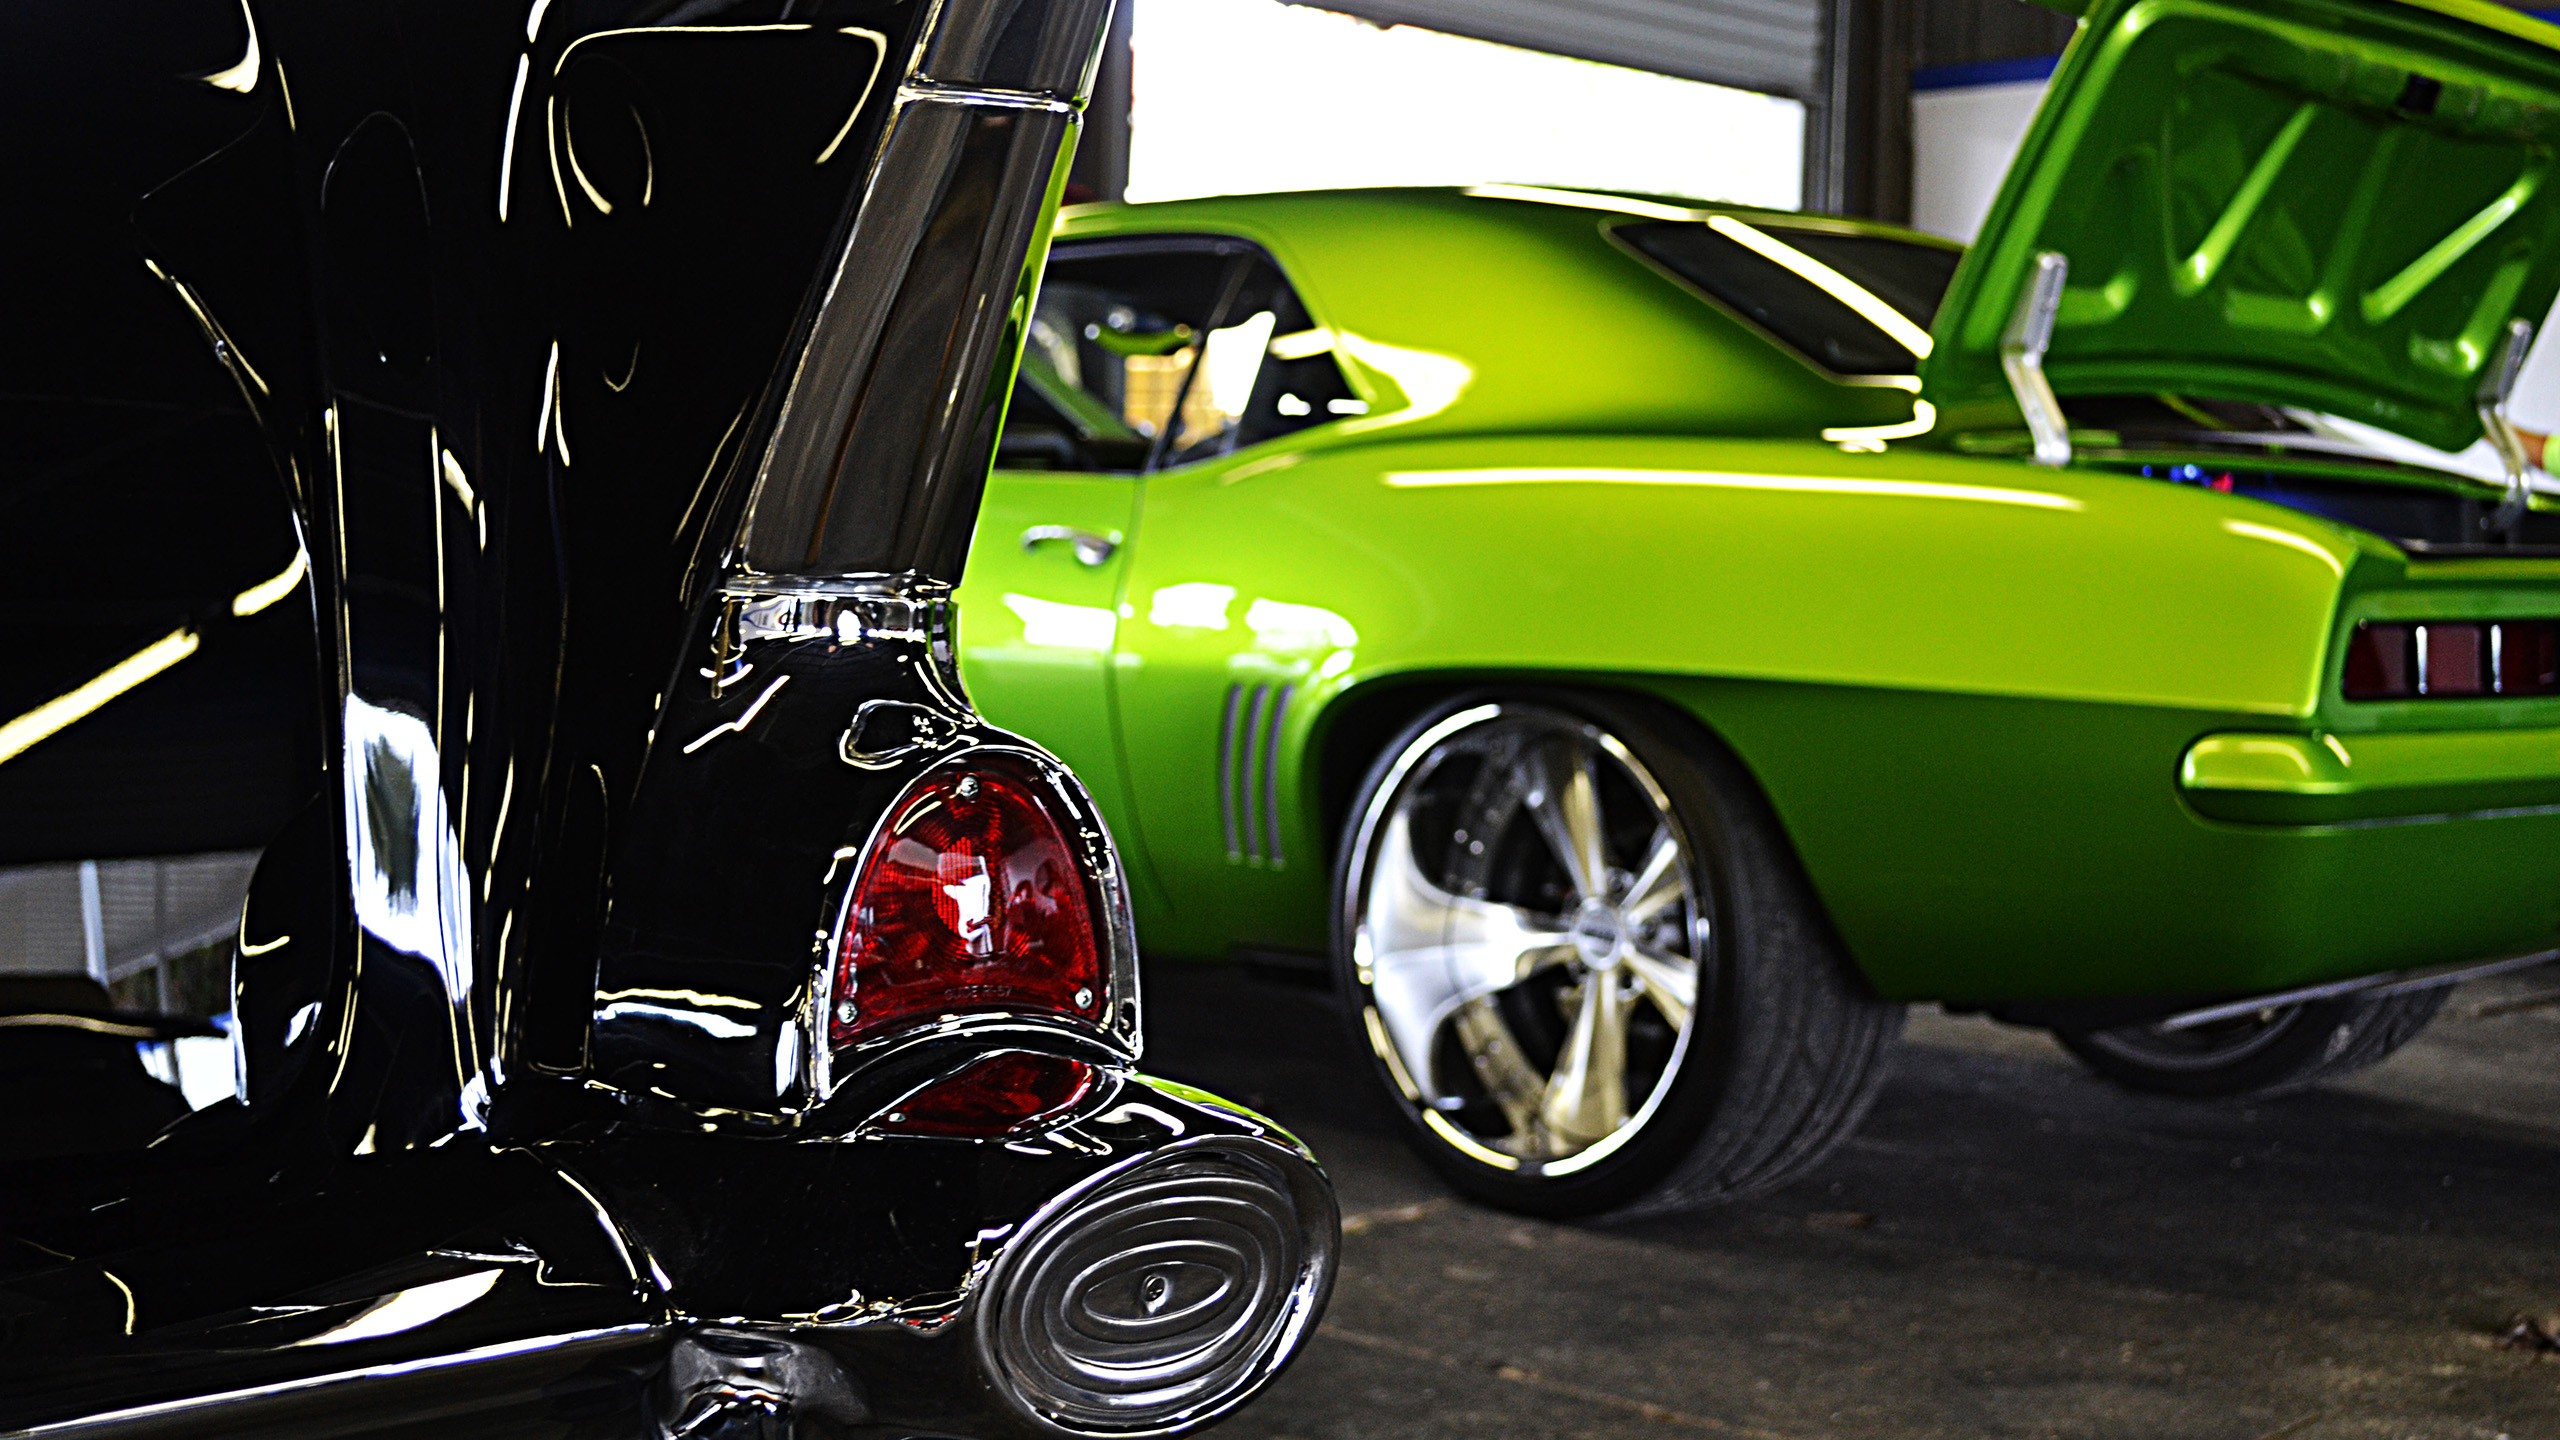 Belair And Camaro Vehicles Cars Chevrolet Chevy Custom - Muscle car tuning shop